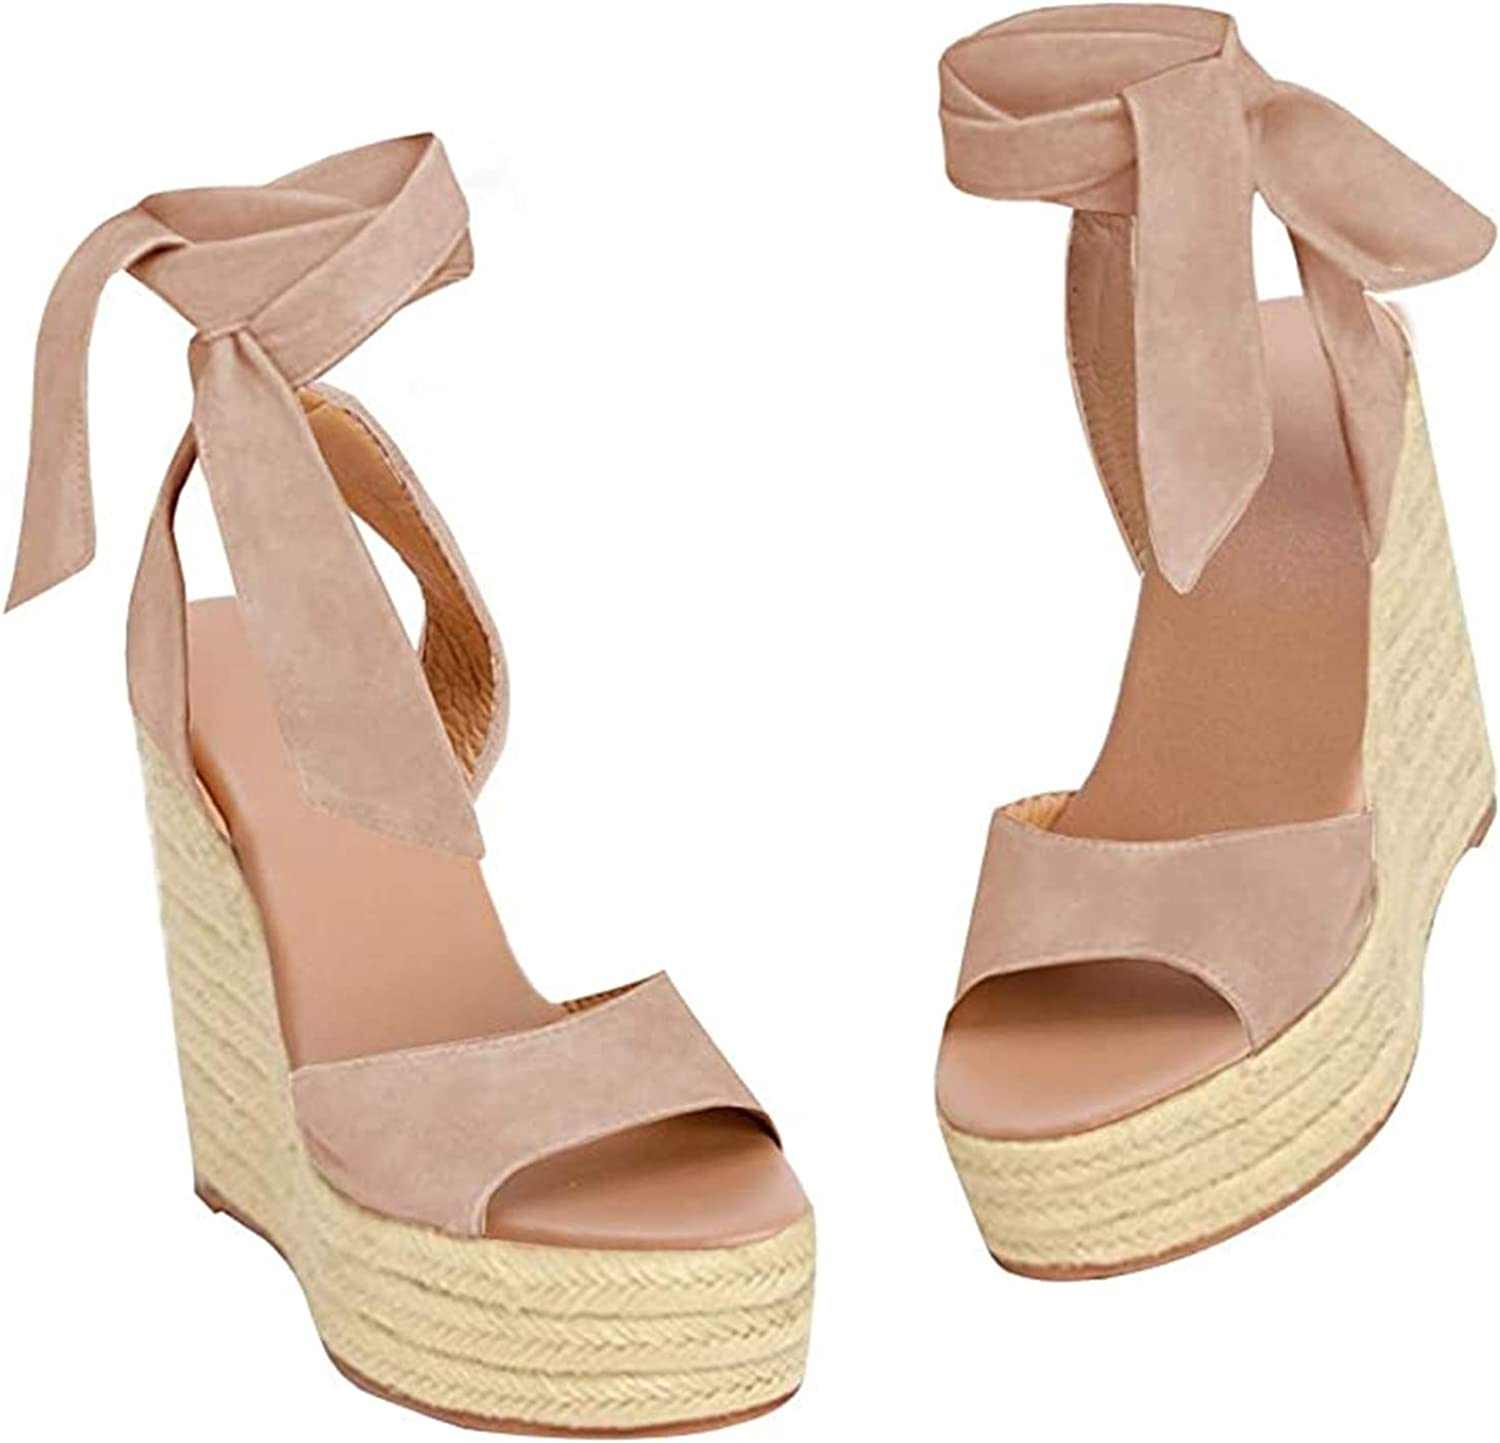 Seraih Womens Lace up Platform Wedges SALENEW very popular Classic At the price Sandals Stra Ankle